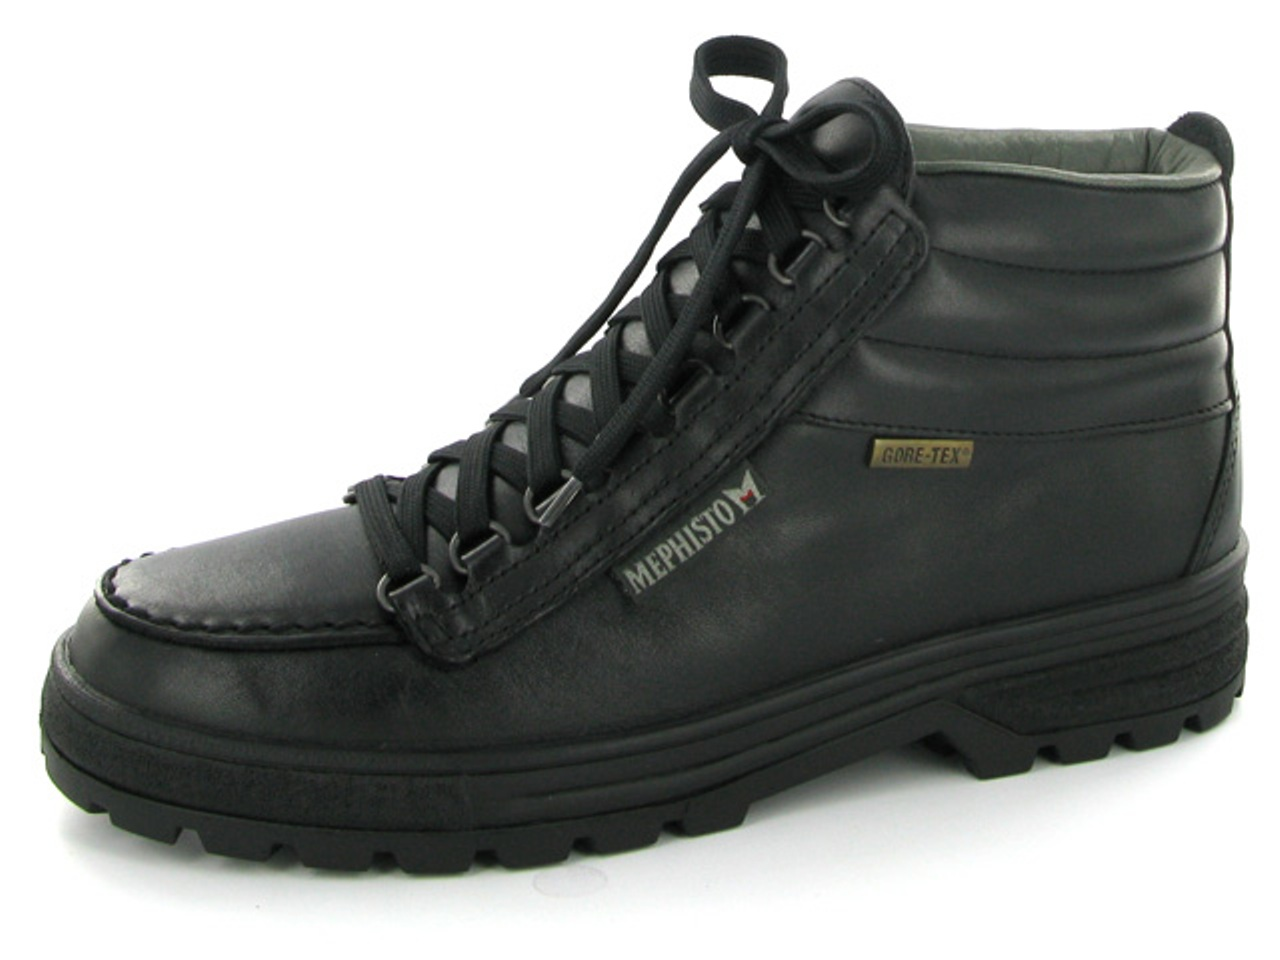 9348d811396502 ... chaussures confortables bottines homme - modèle SIERRA GORE. bottines  homme modèle SIERRA GORE - Mephisto